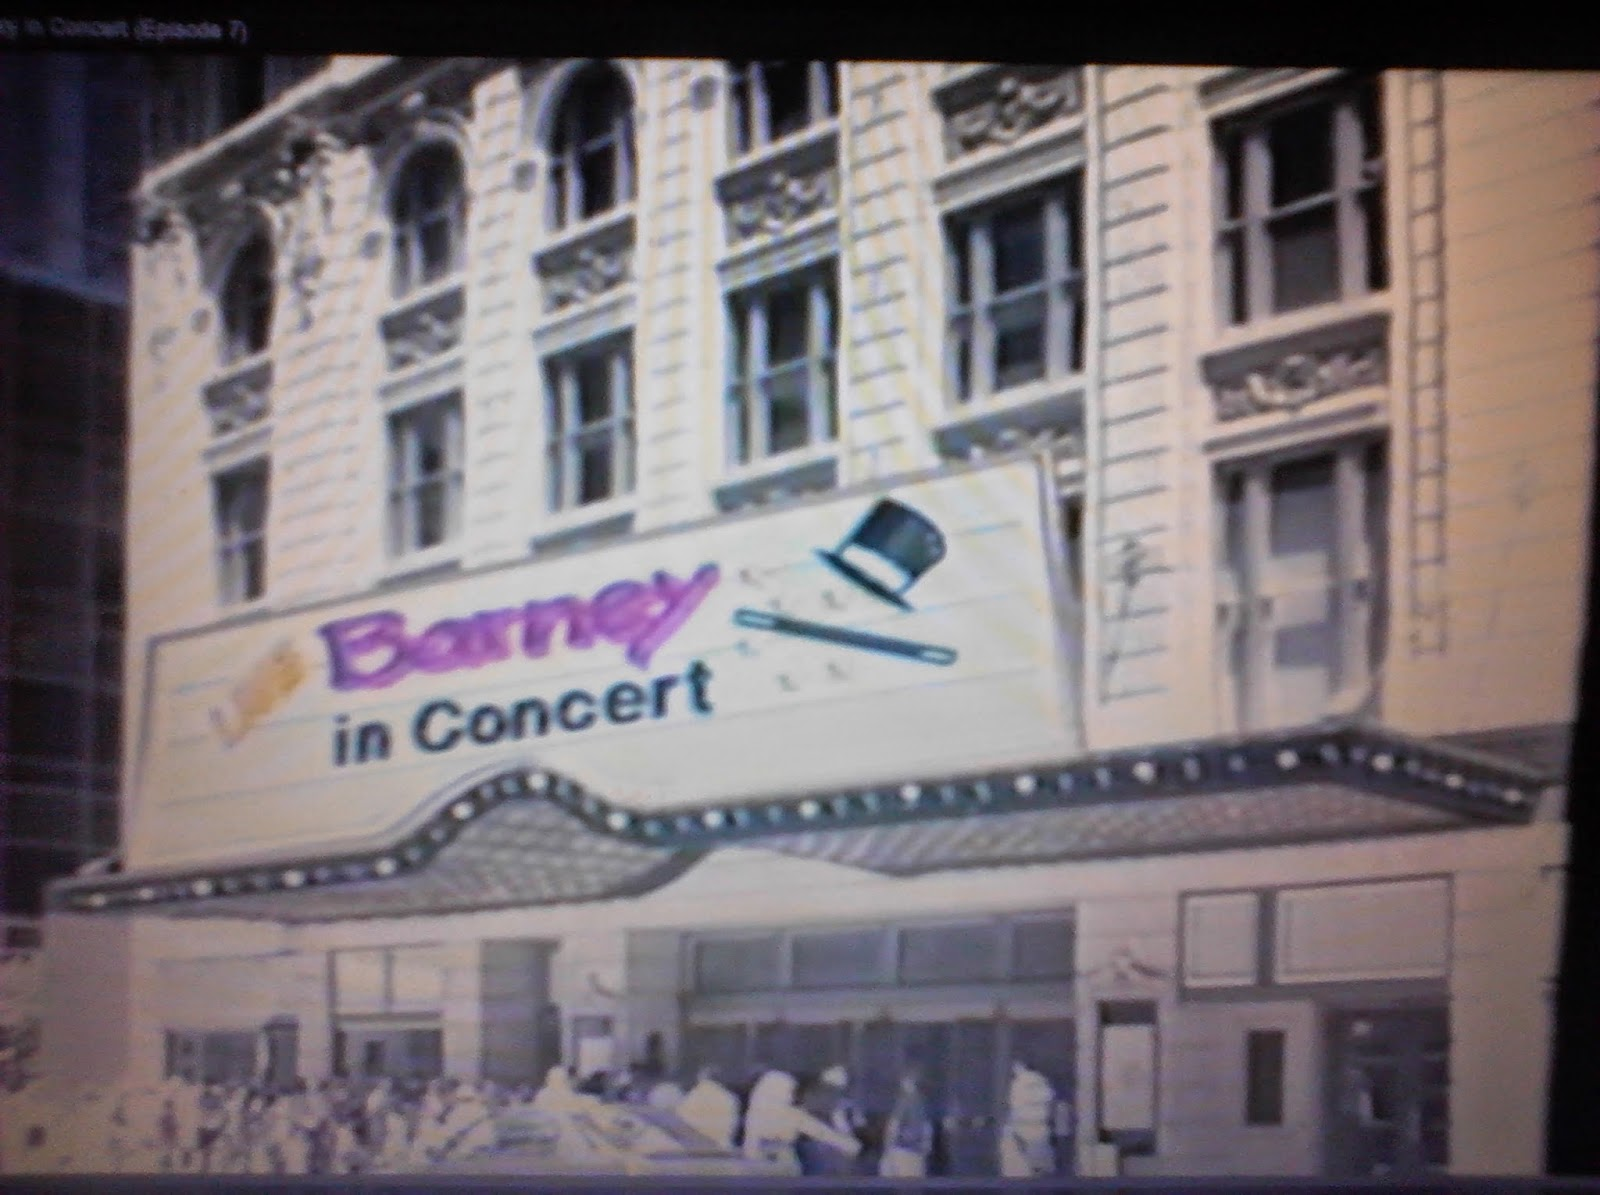 Whatsoever Critic Barney In Concert Video Review - Barney concert vhs